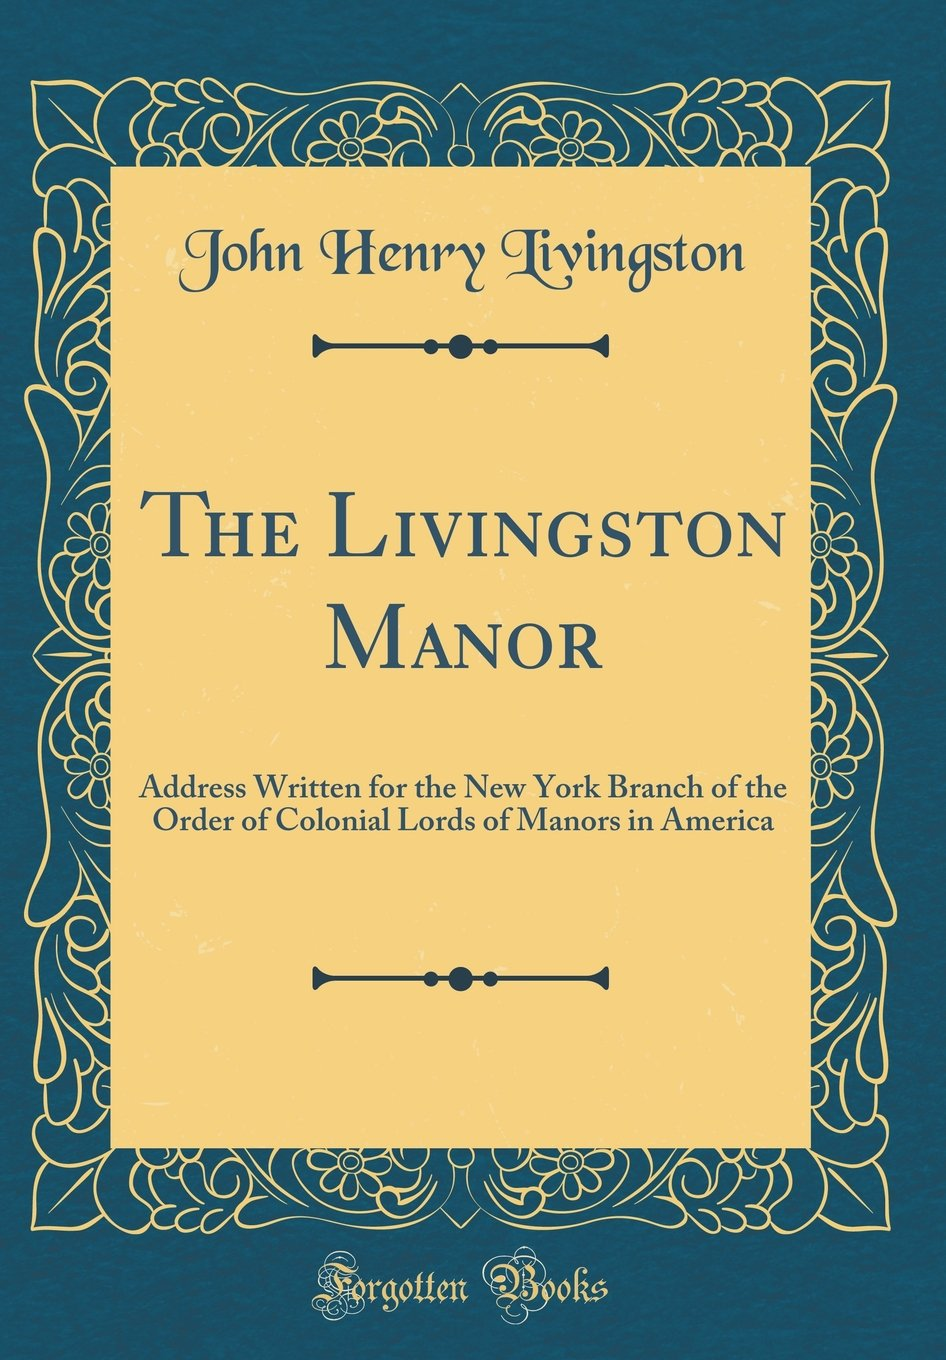 The Livingston Manor: Address Written for the New York Branch of the Order of Colonial Lords of Manors in America (Classic Reprint) ebook